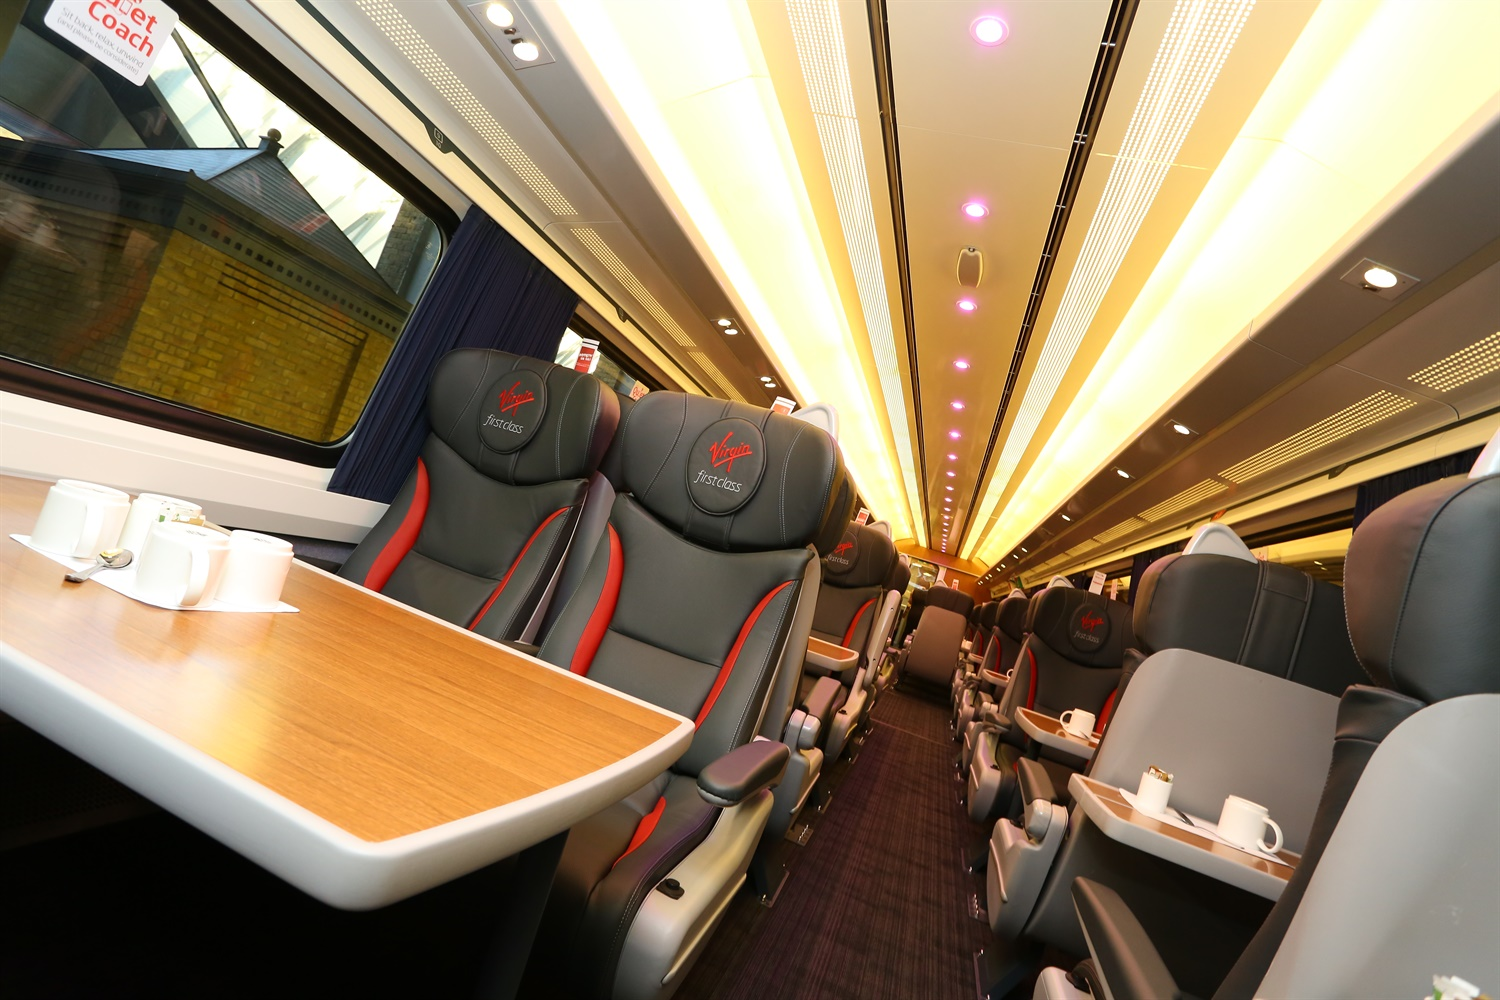 The New Look Trains Include Luxurious Leather Seats And Mood Lighting In  First Class And Red Cloth Seats In Standard, Providing A New Lease Of Life  To The ...